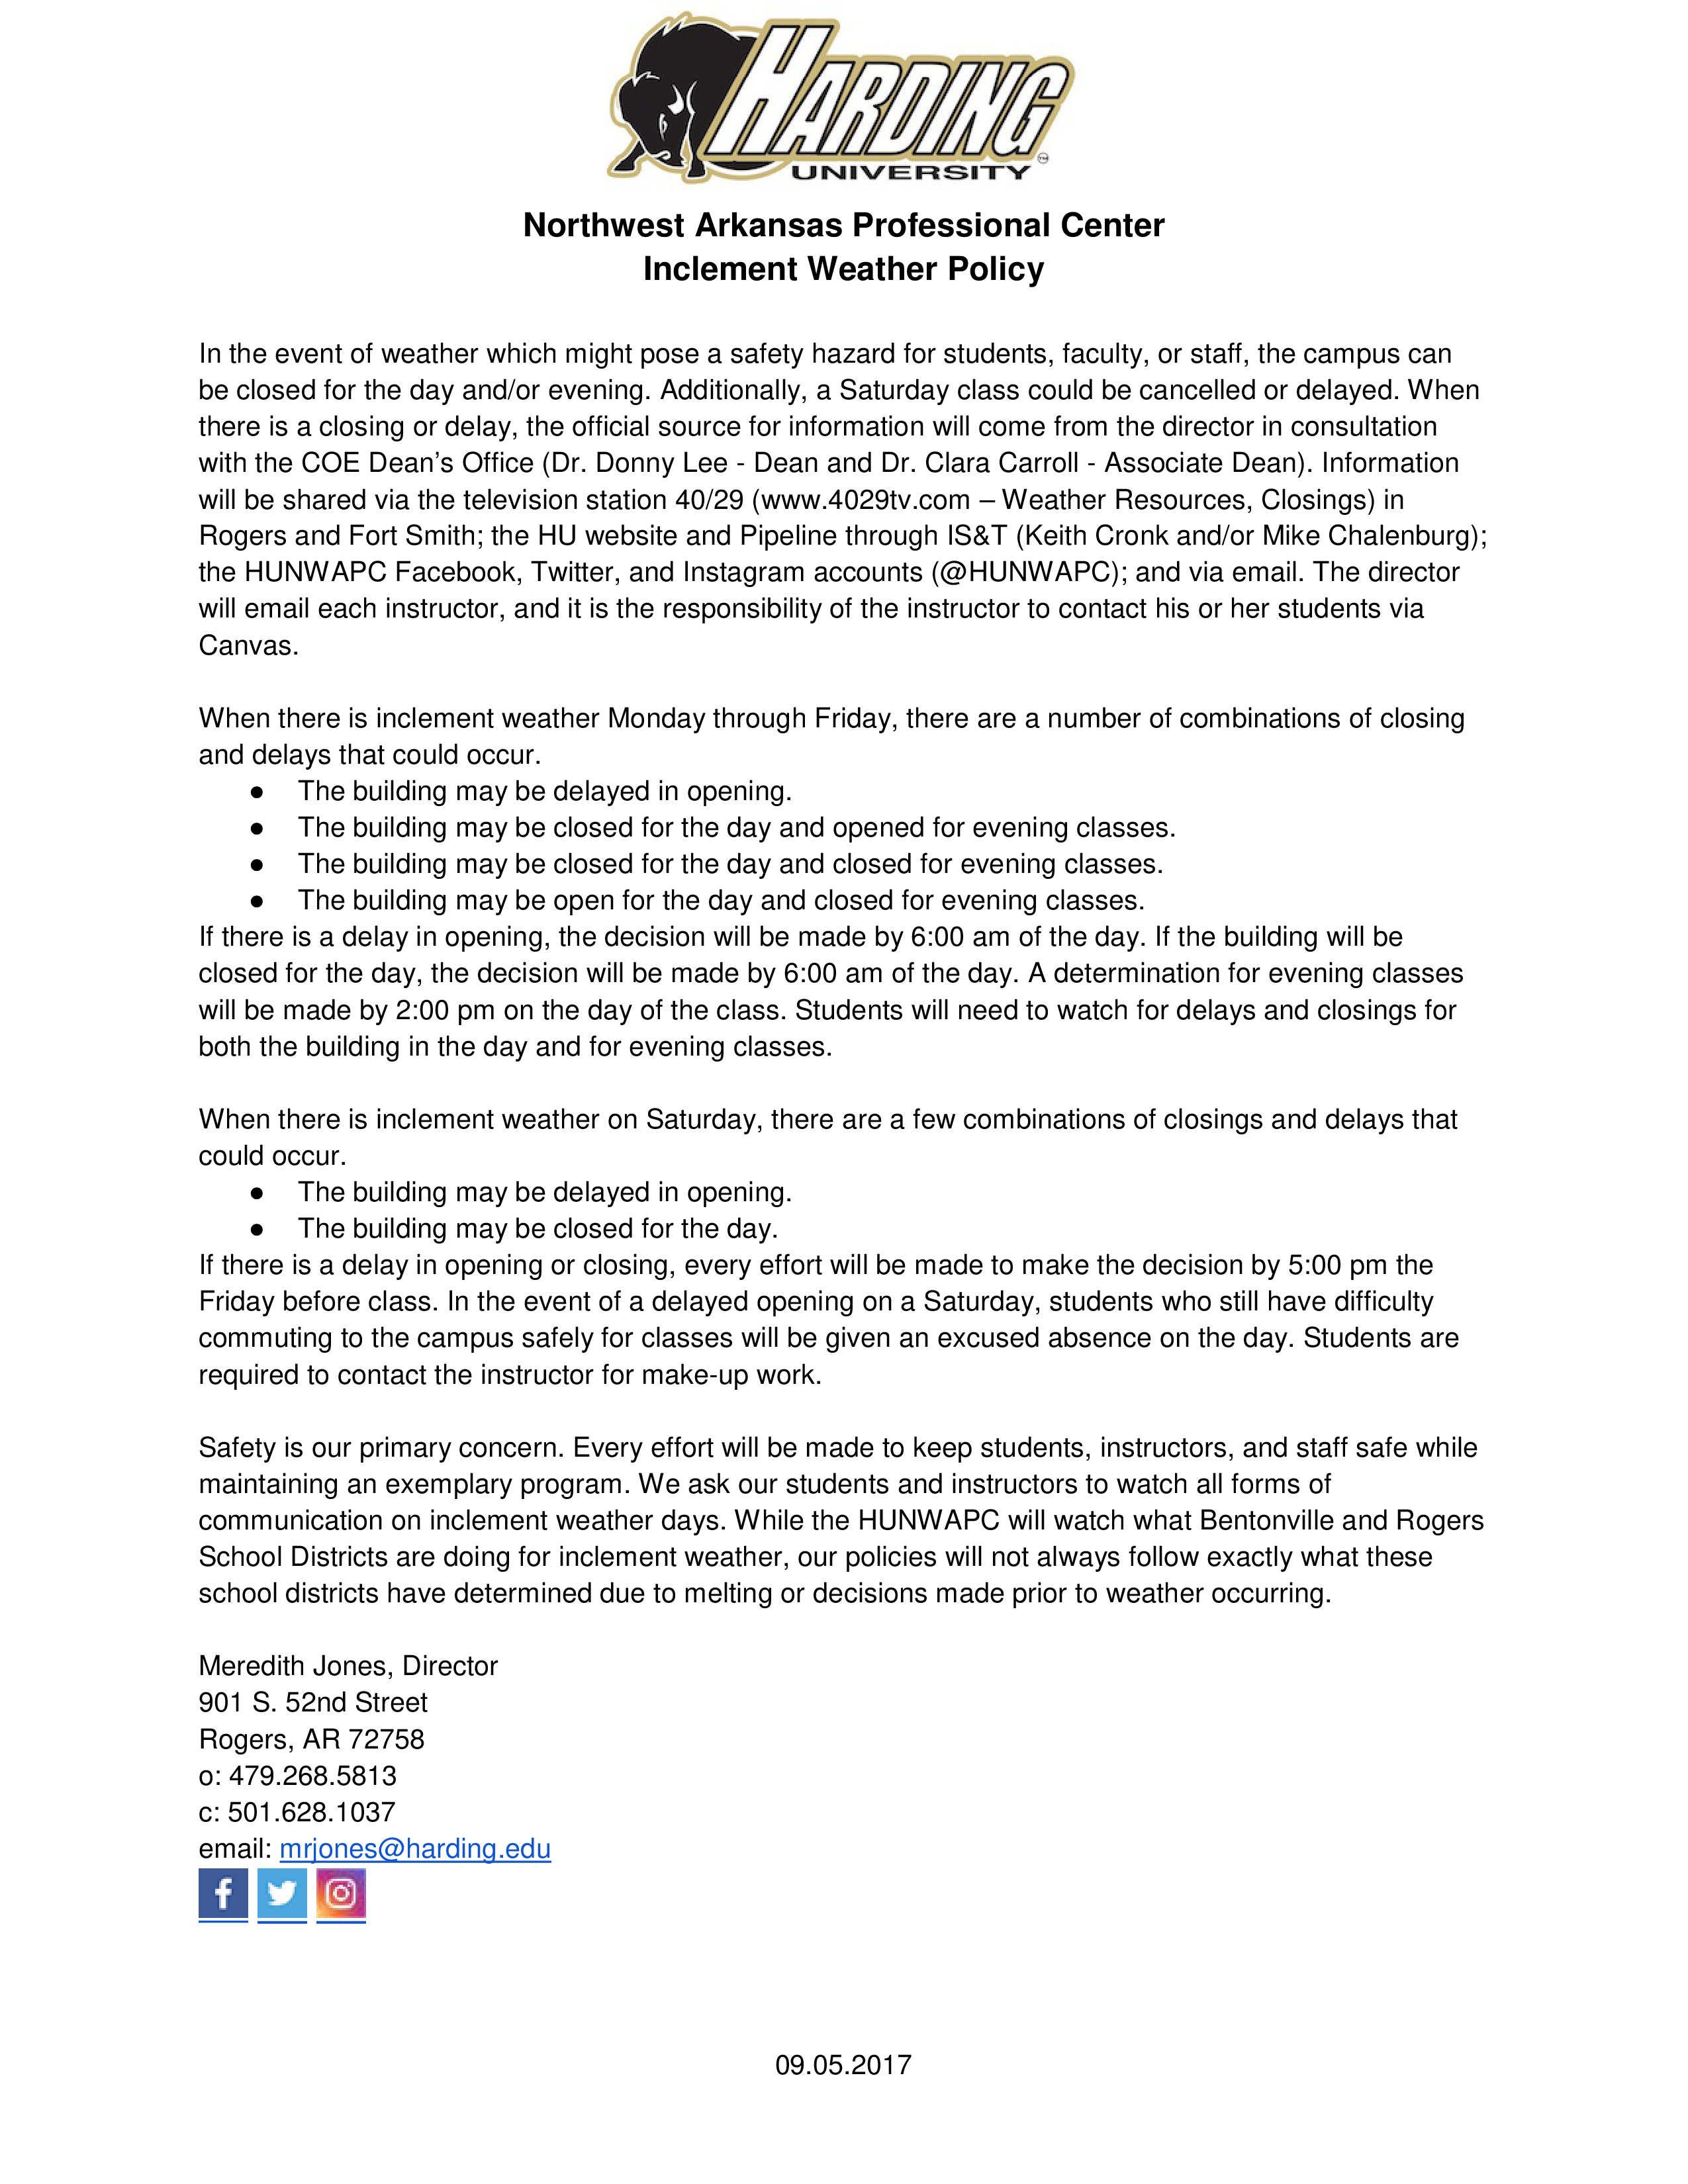 Free Professional Center Inclement Weather Policy | Templates at ...